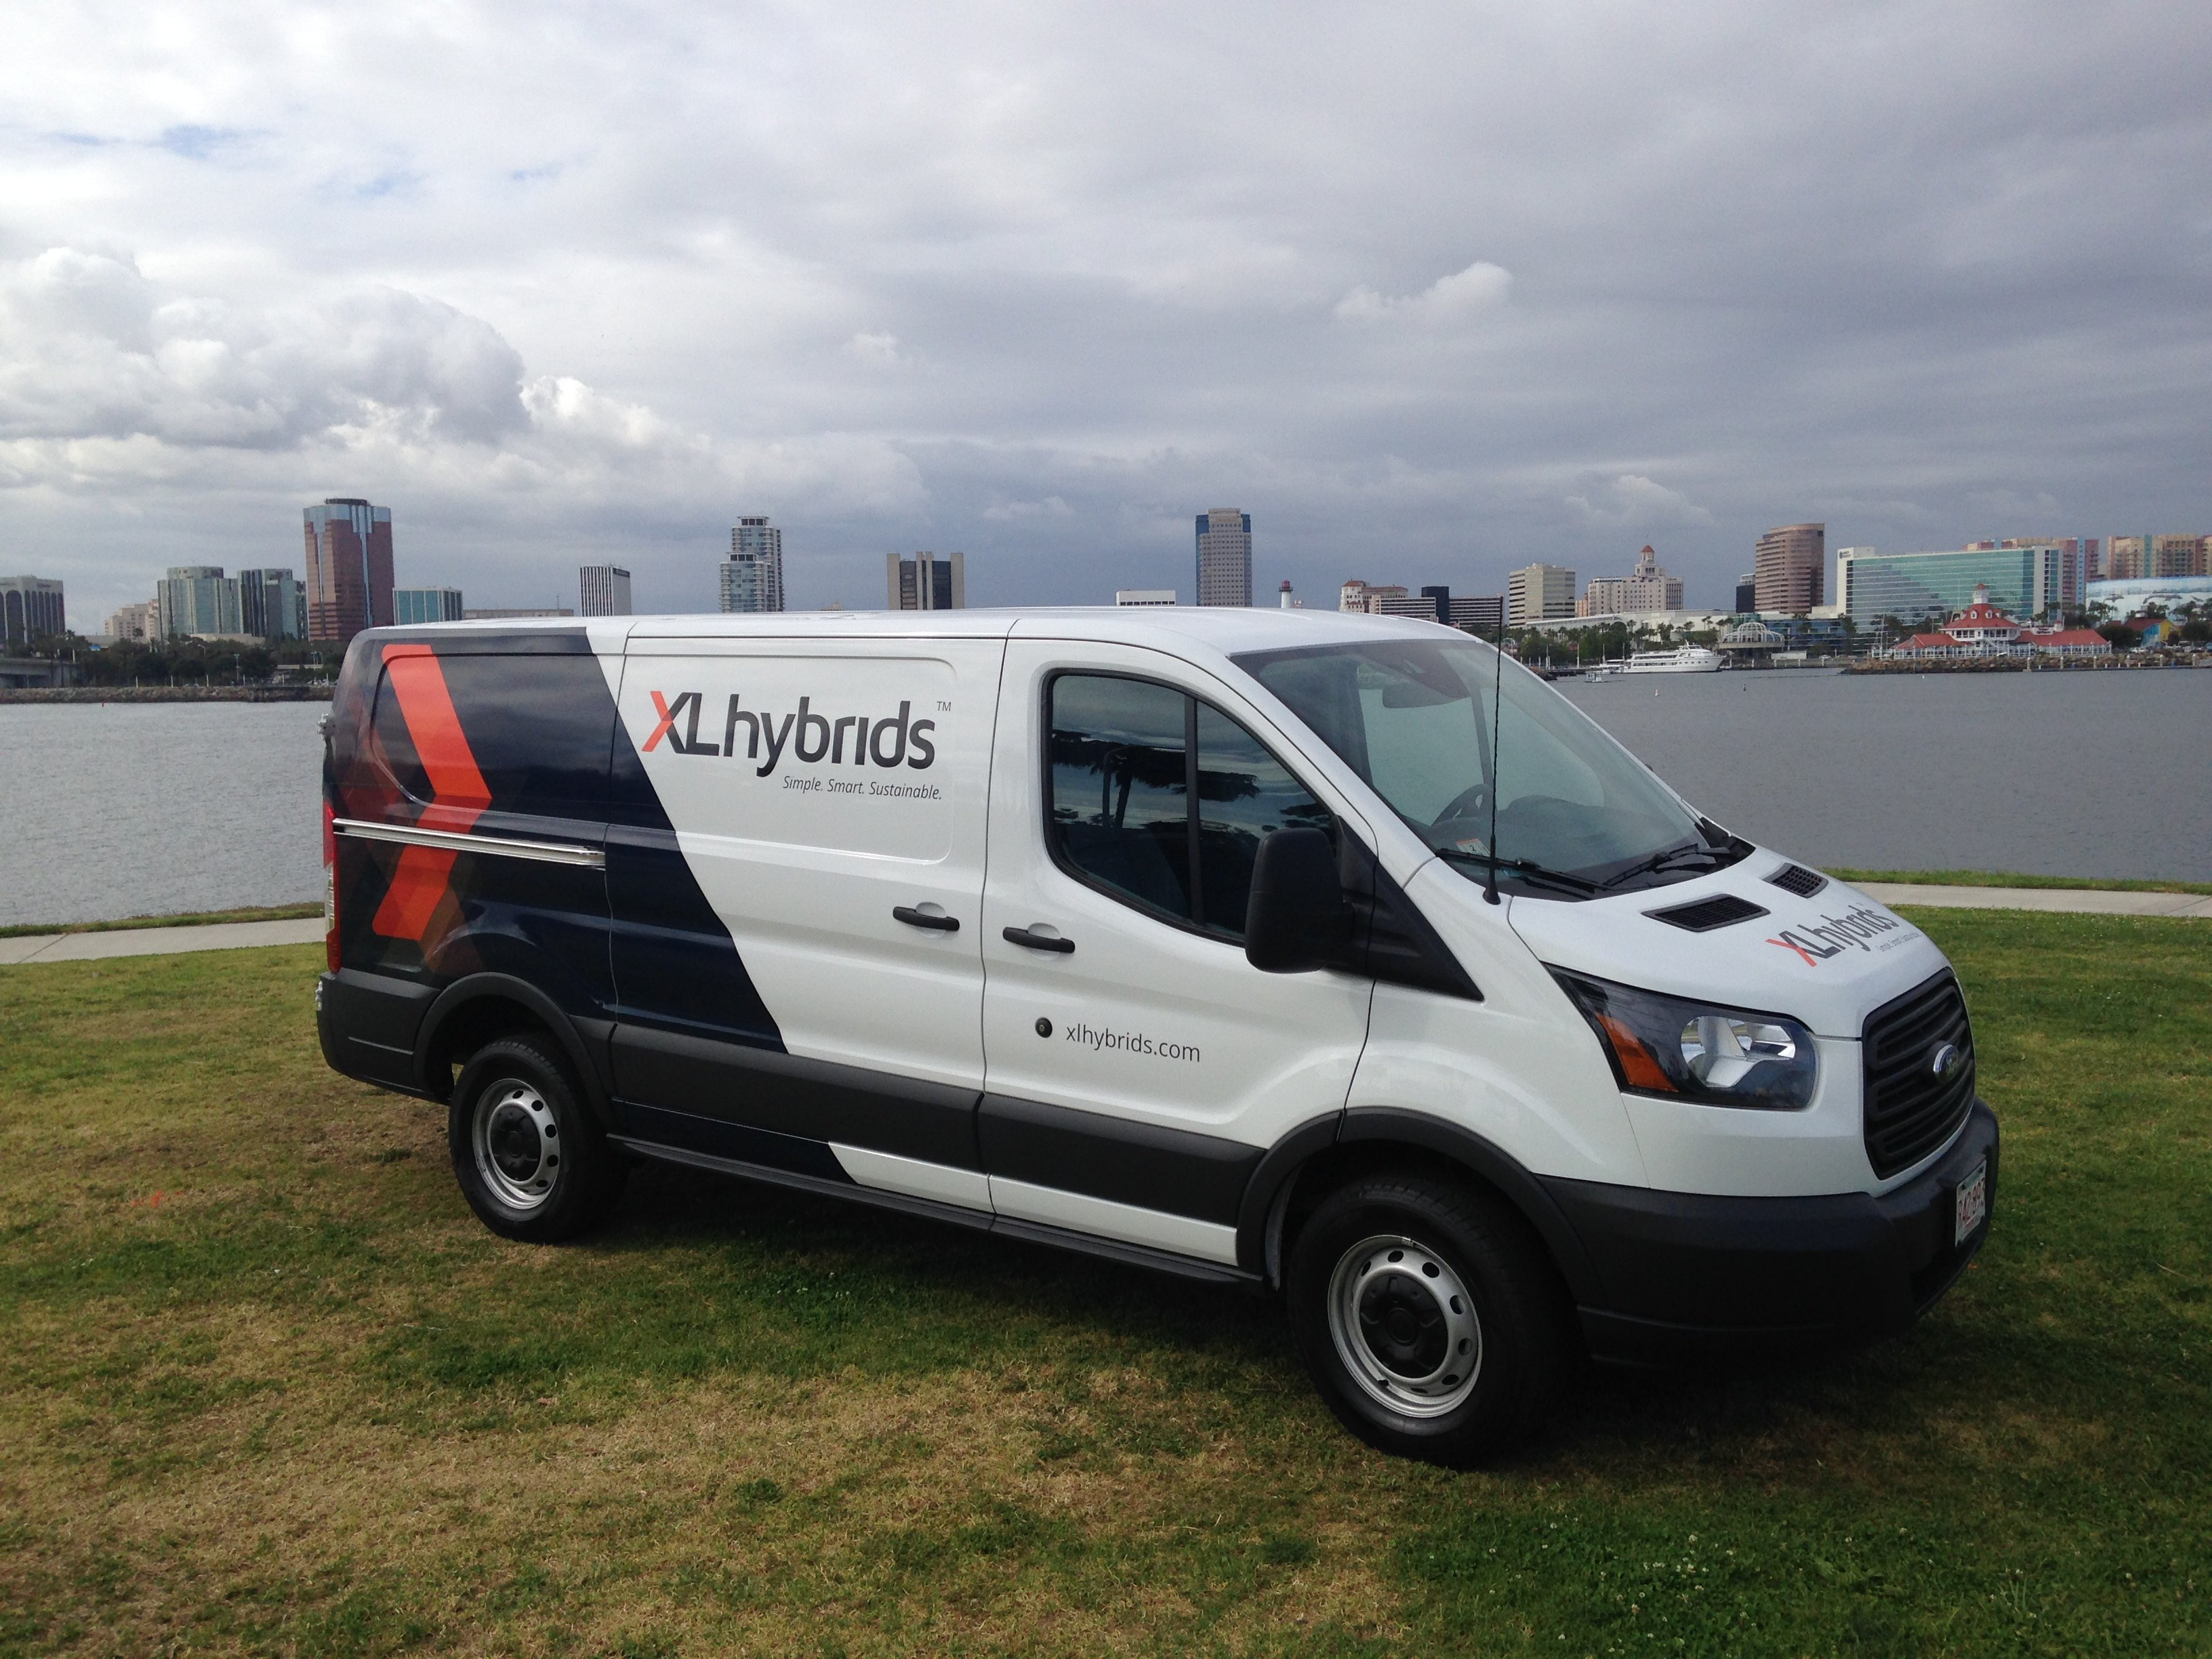 Montgomery County Adds Hybrid Ford Vans